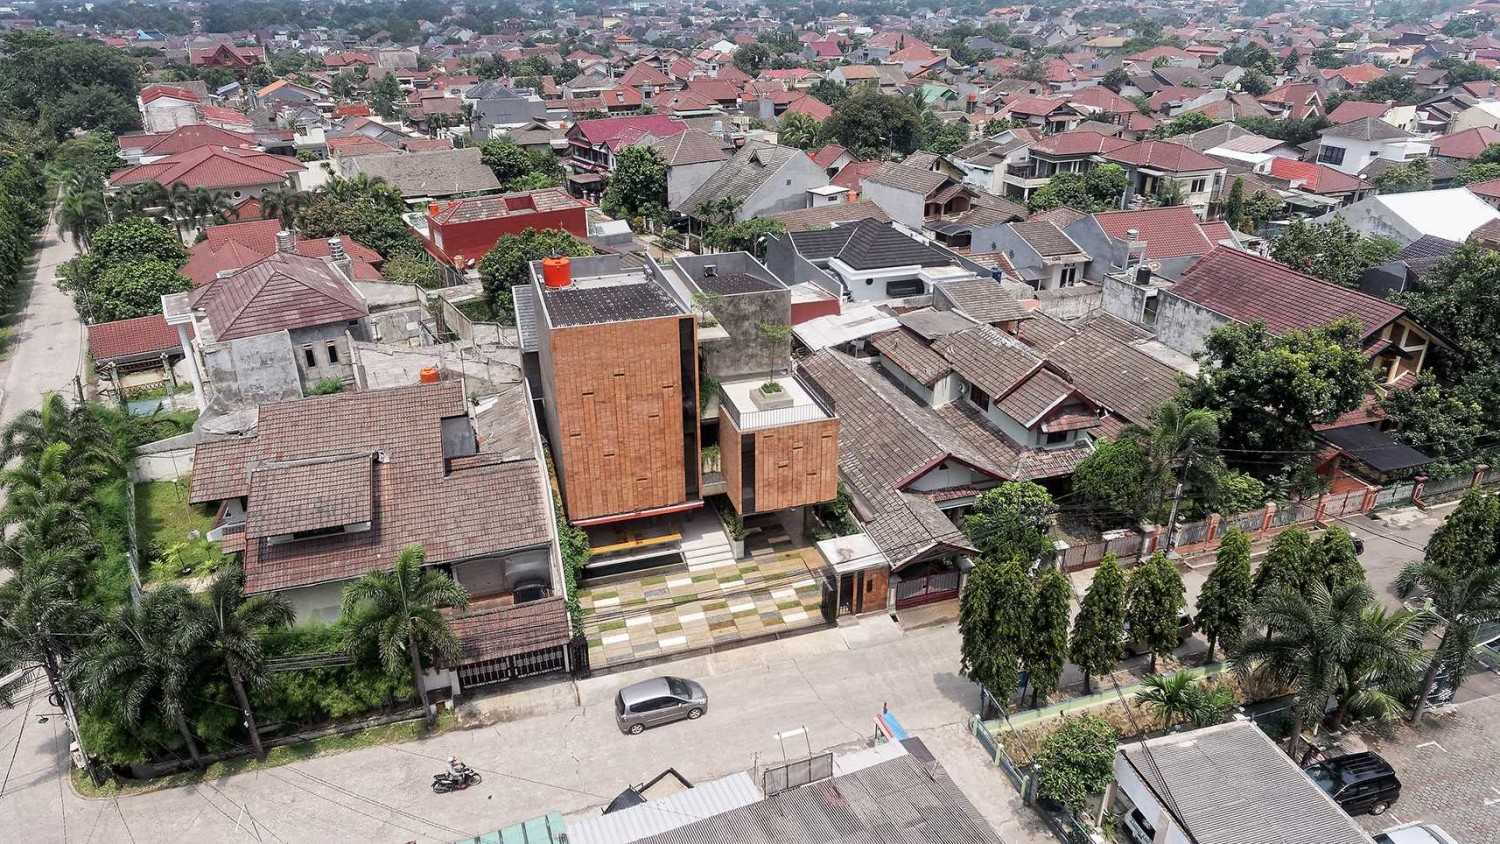 Delution The Equalizer Jatiwaringin, Pondokgede, Bekasi City, West Java, Indonesia Jatiwaringin, Pondokgede, Bekasi City, West Java, Indonesia Bird Eye View Contemporary,industrial,modern,kontemporer 36759